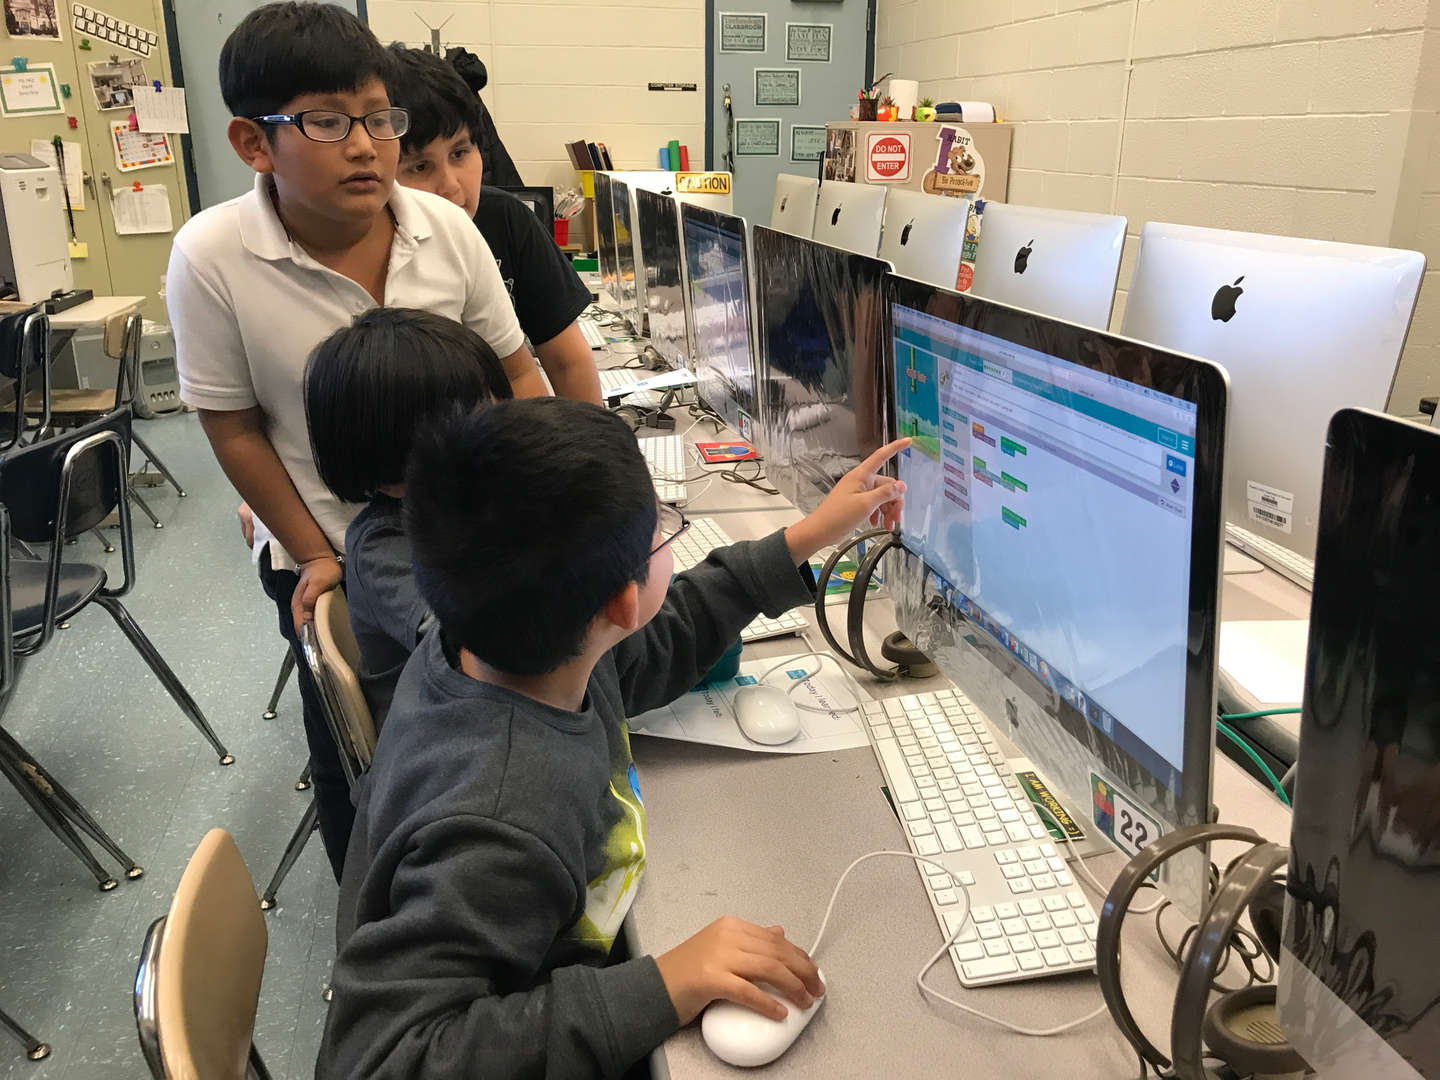 3 kids helping each other about the work on the computer